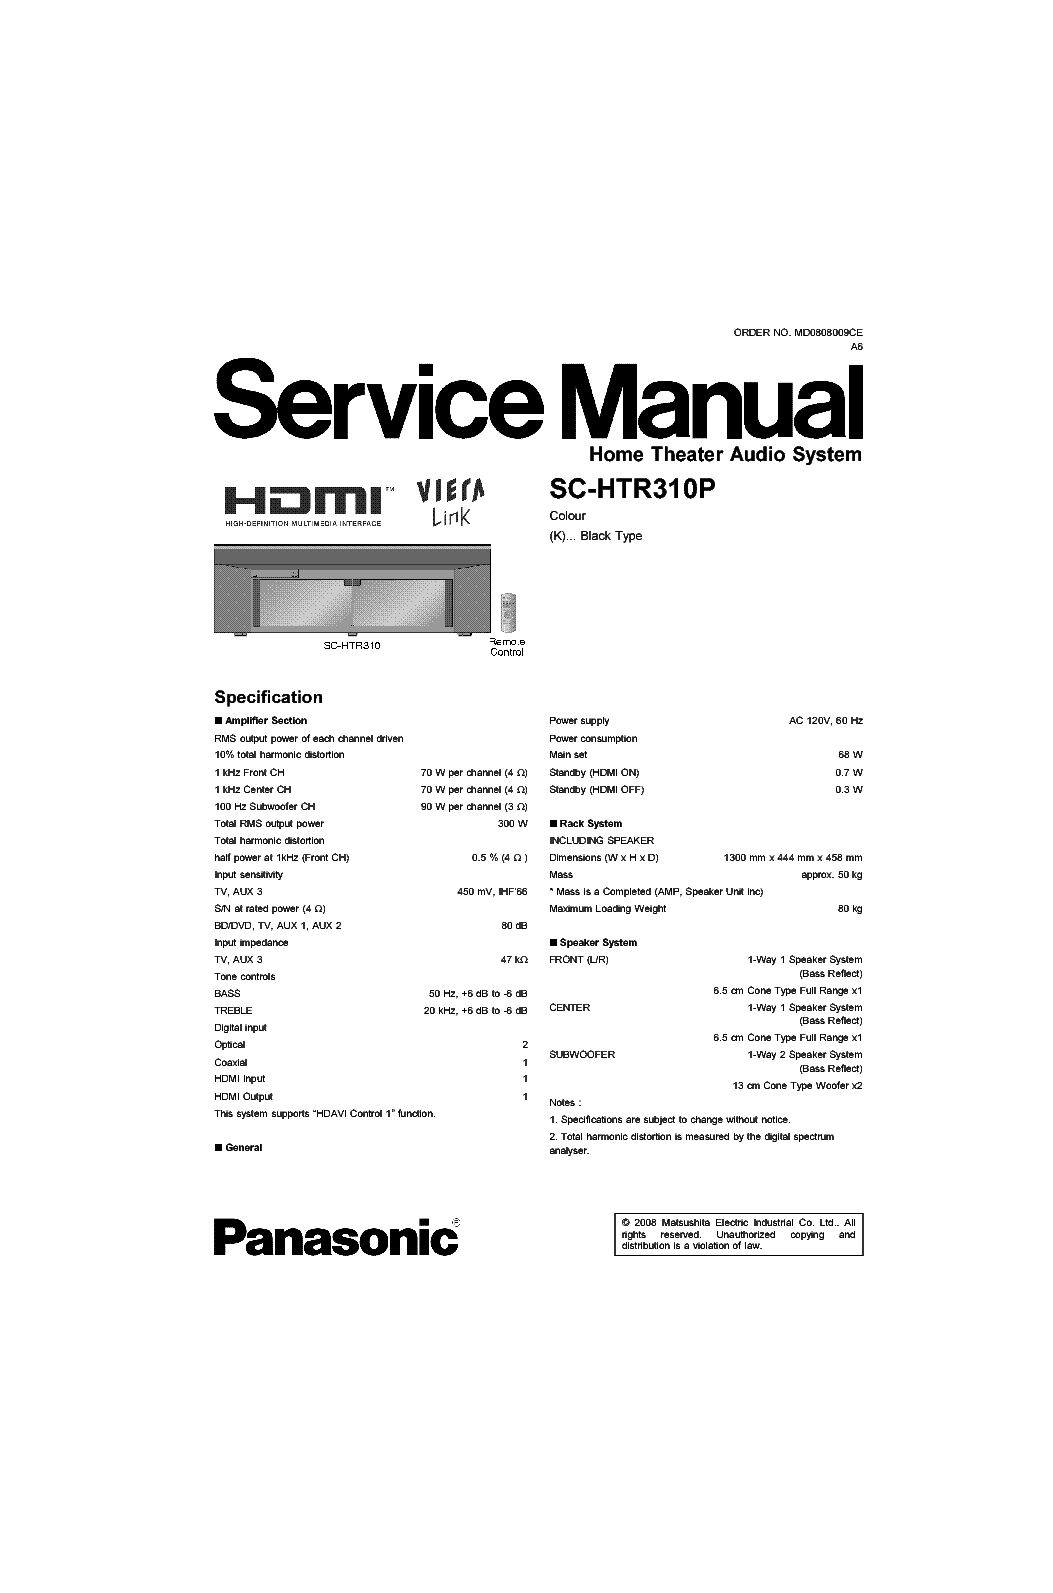 panasonic sc htr 310 p service manual download schematics. Black Bedroom Furniture Sets. Home Design Ideas